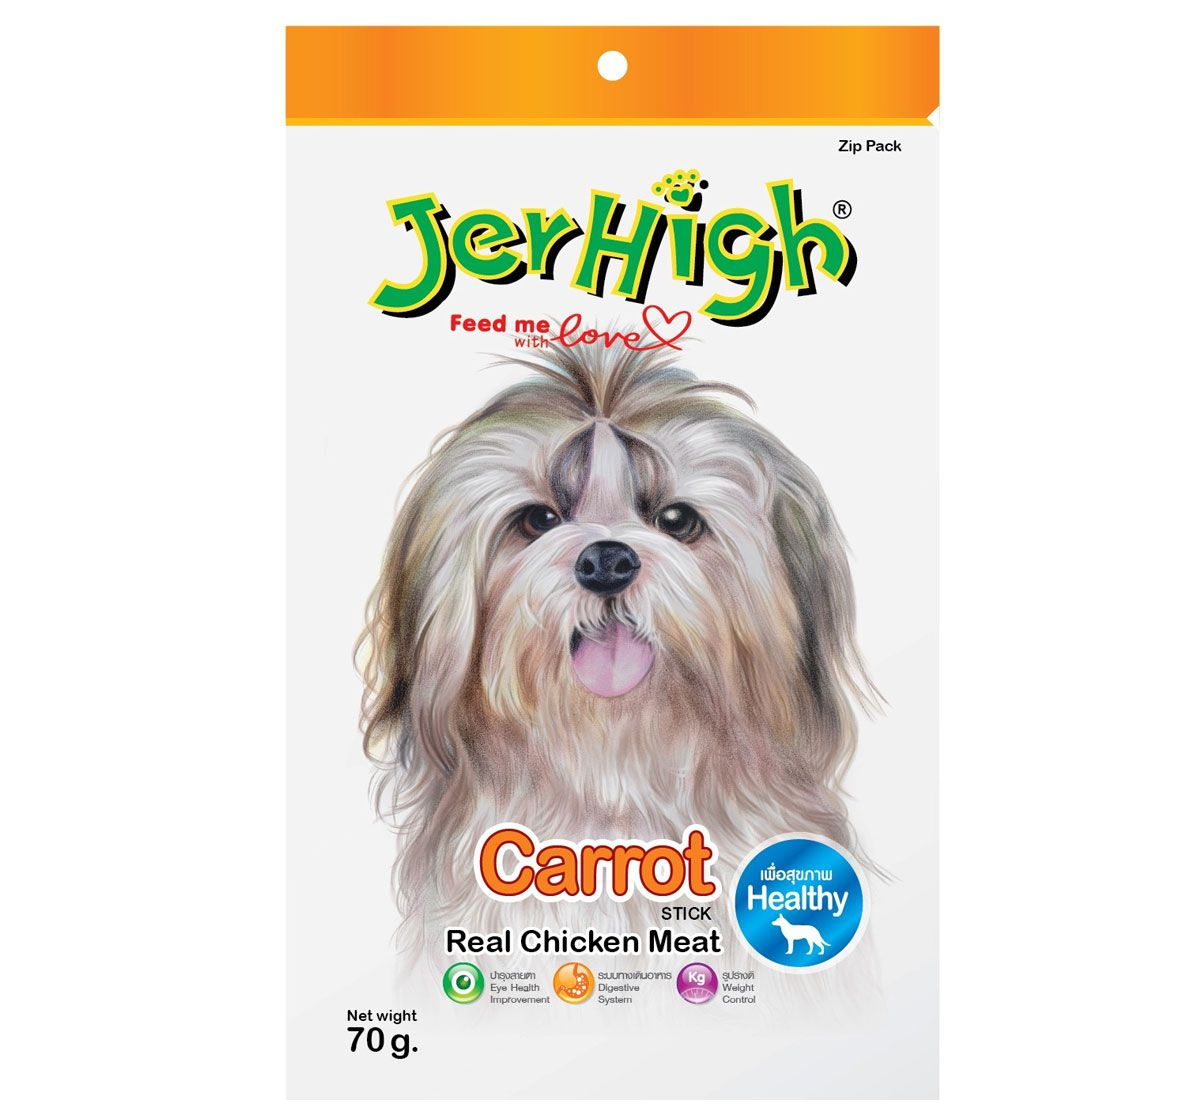 JerHigh Carrot Stick Premium Dog Treats 70g x 12 Packs